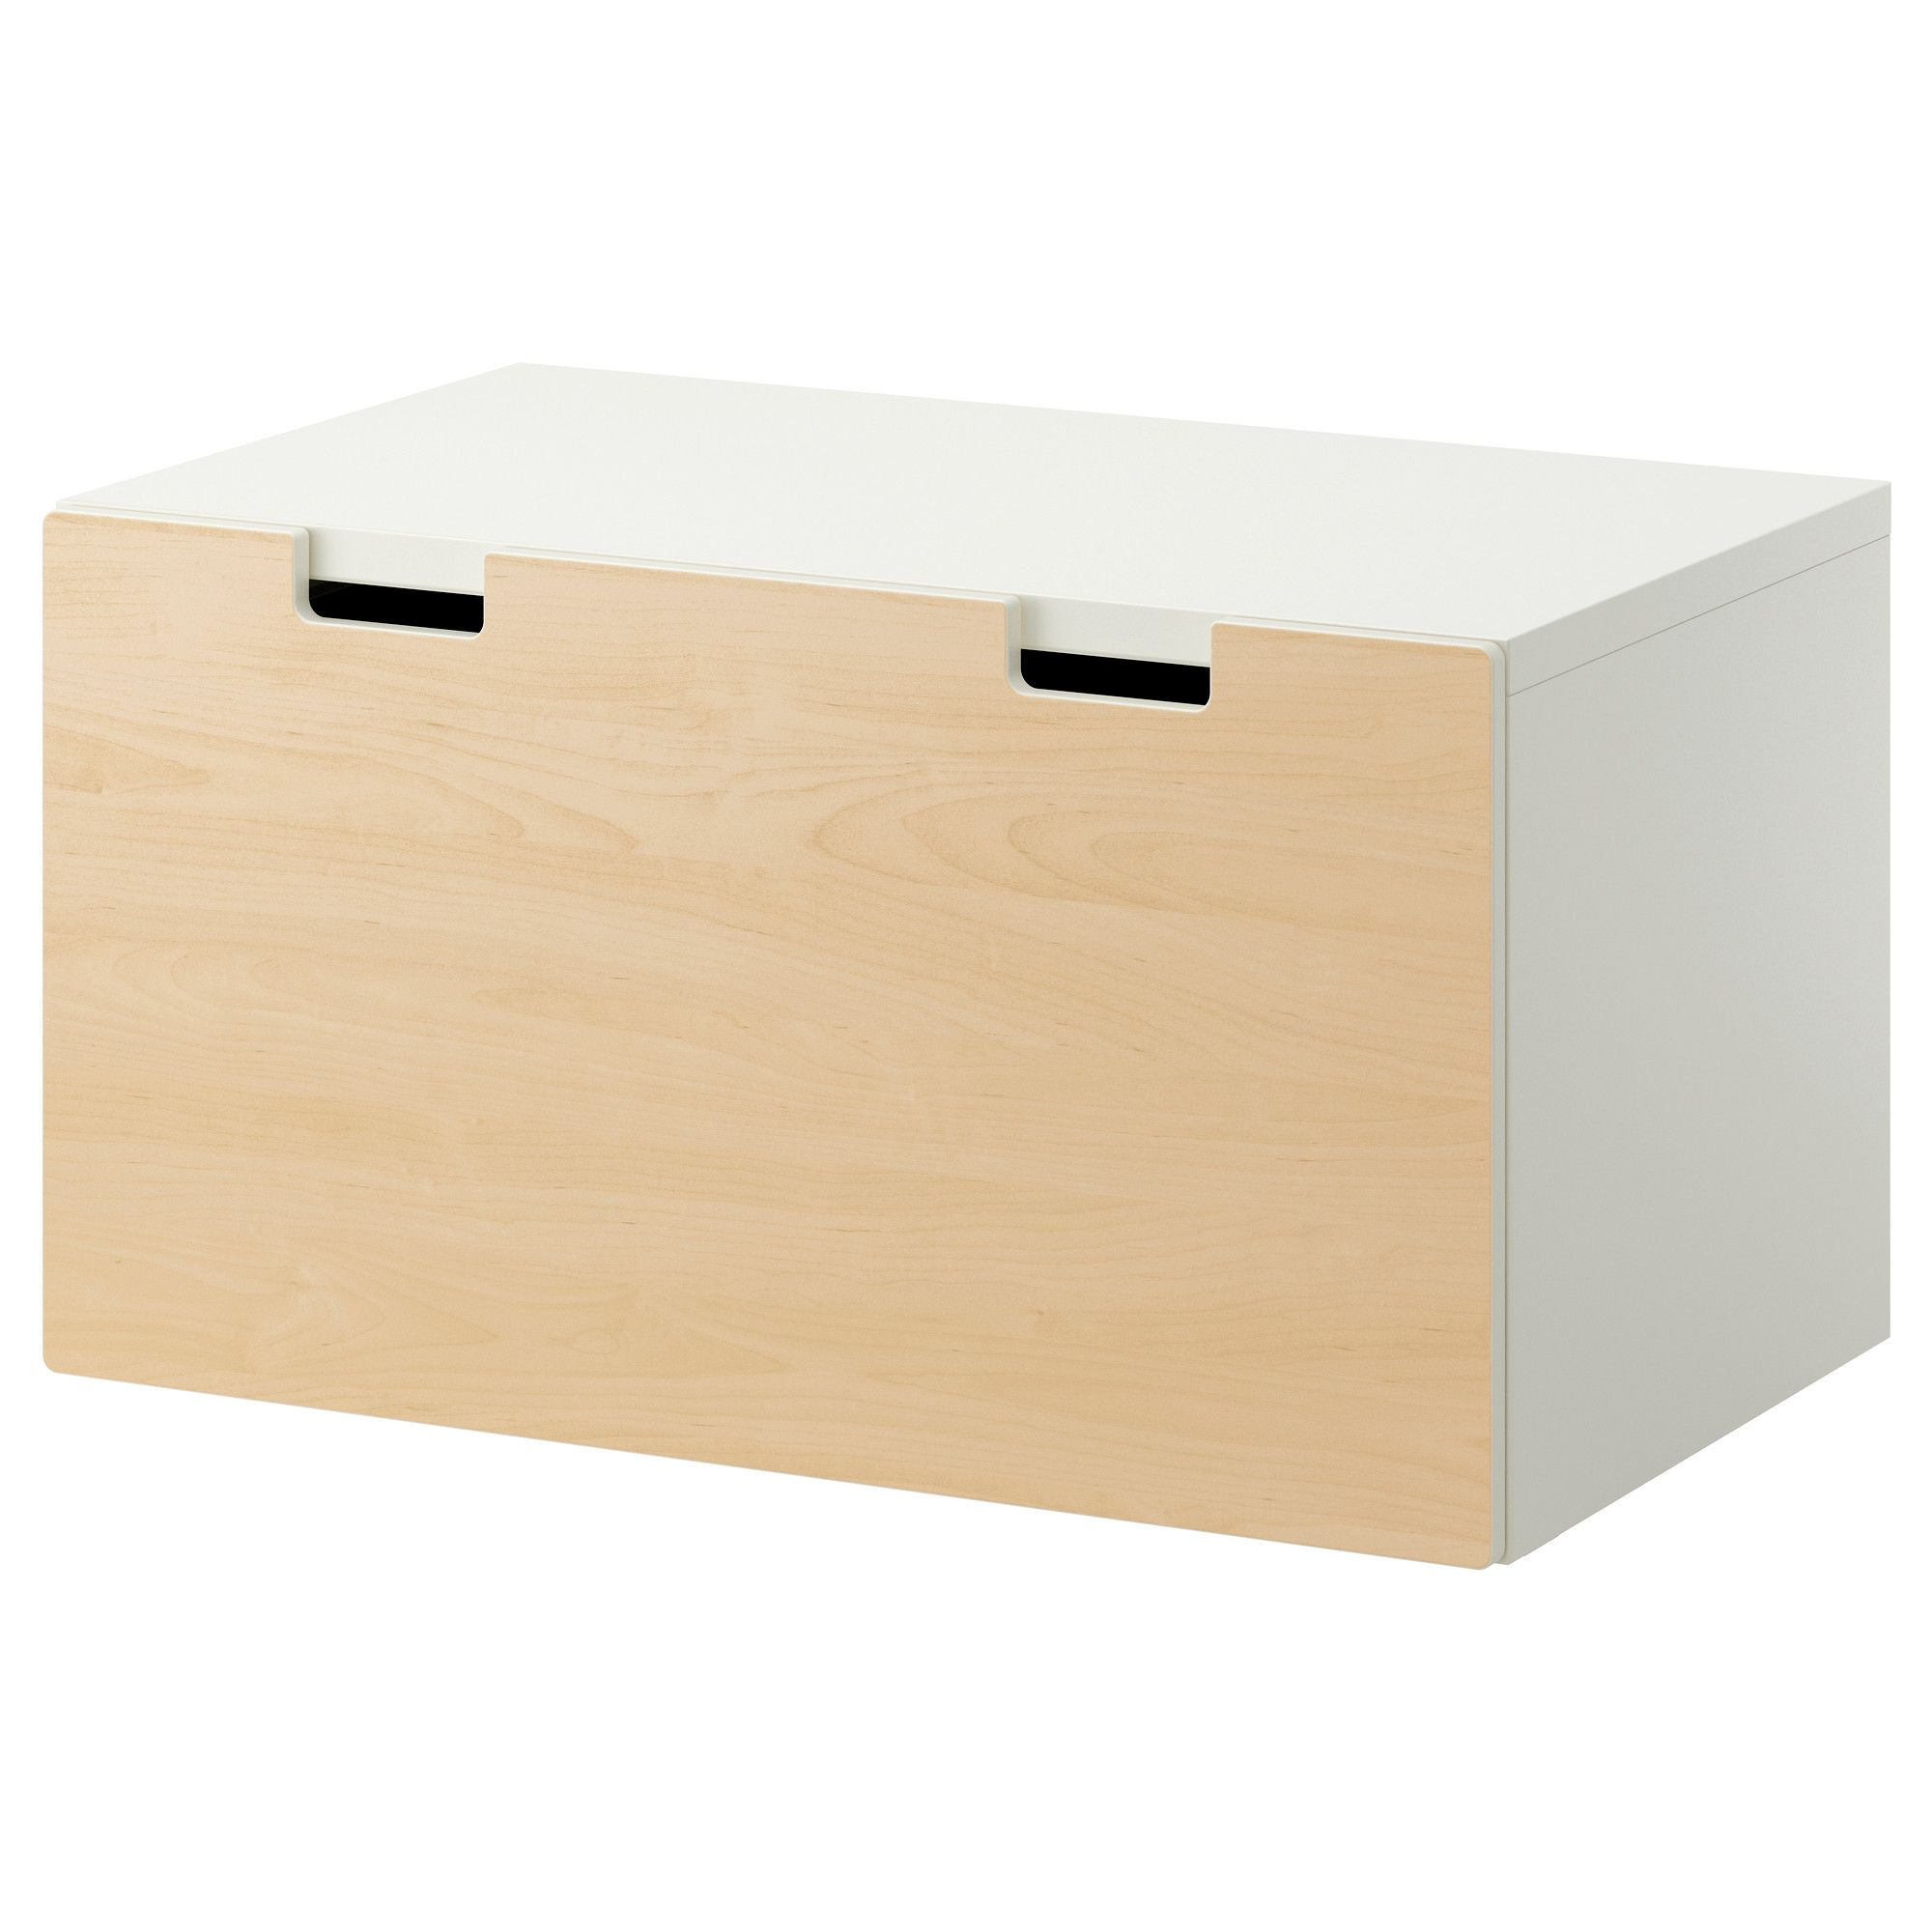 Elegant IKEA   STUVA, Storage Bench, White/blue, , Low Storage Makes It Easier For  Children To Reach And Organize Their Things.Stands Evenly On An Uneven  Floor;